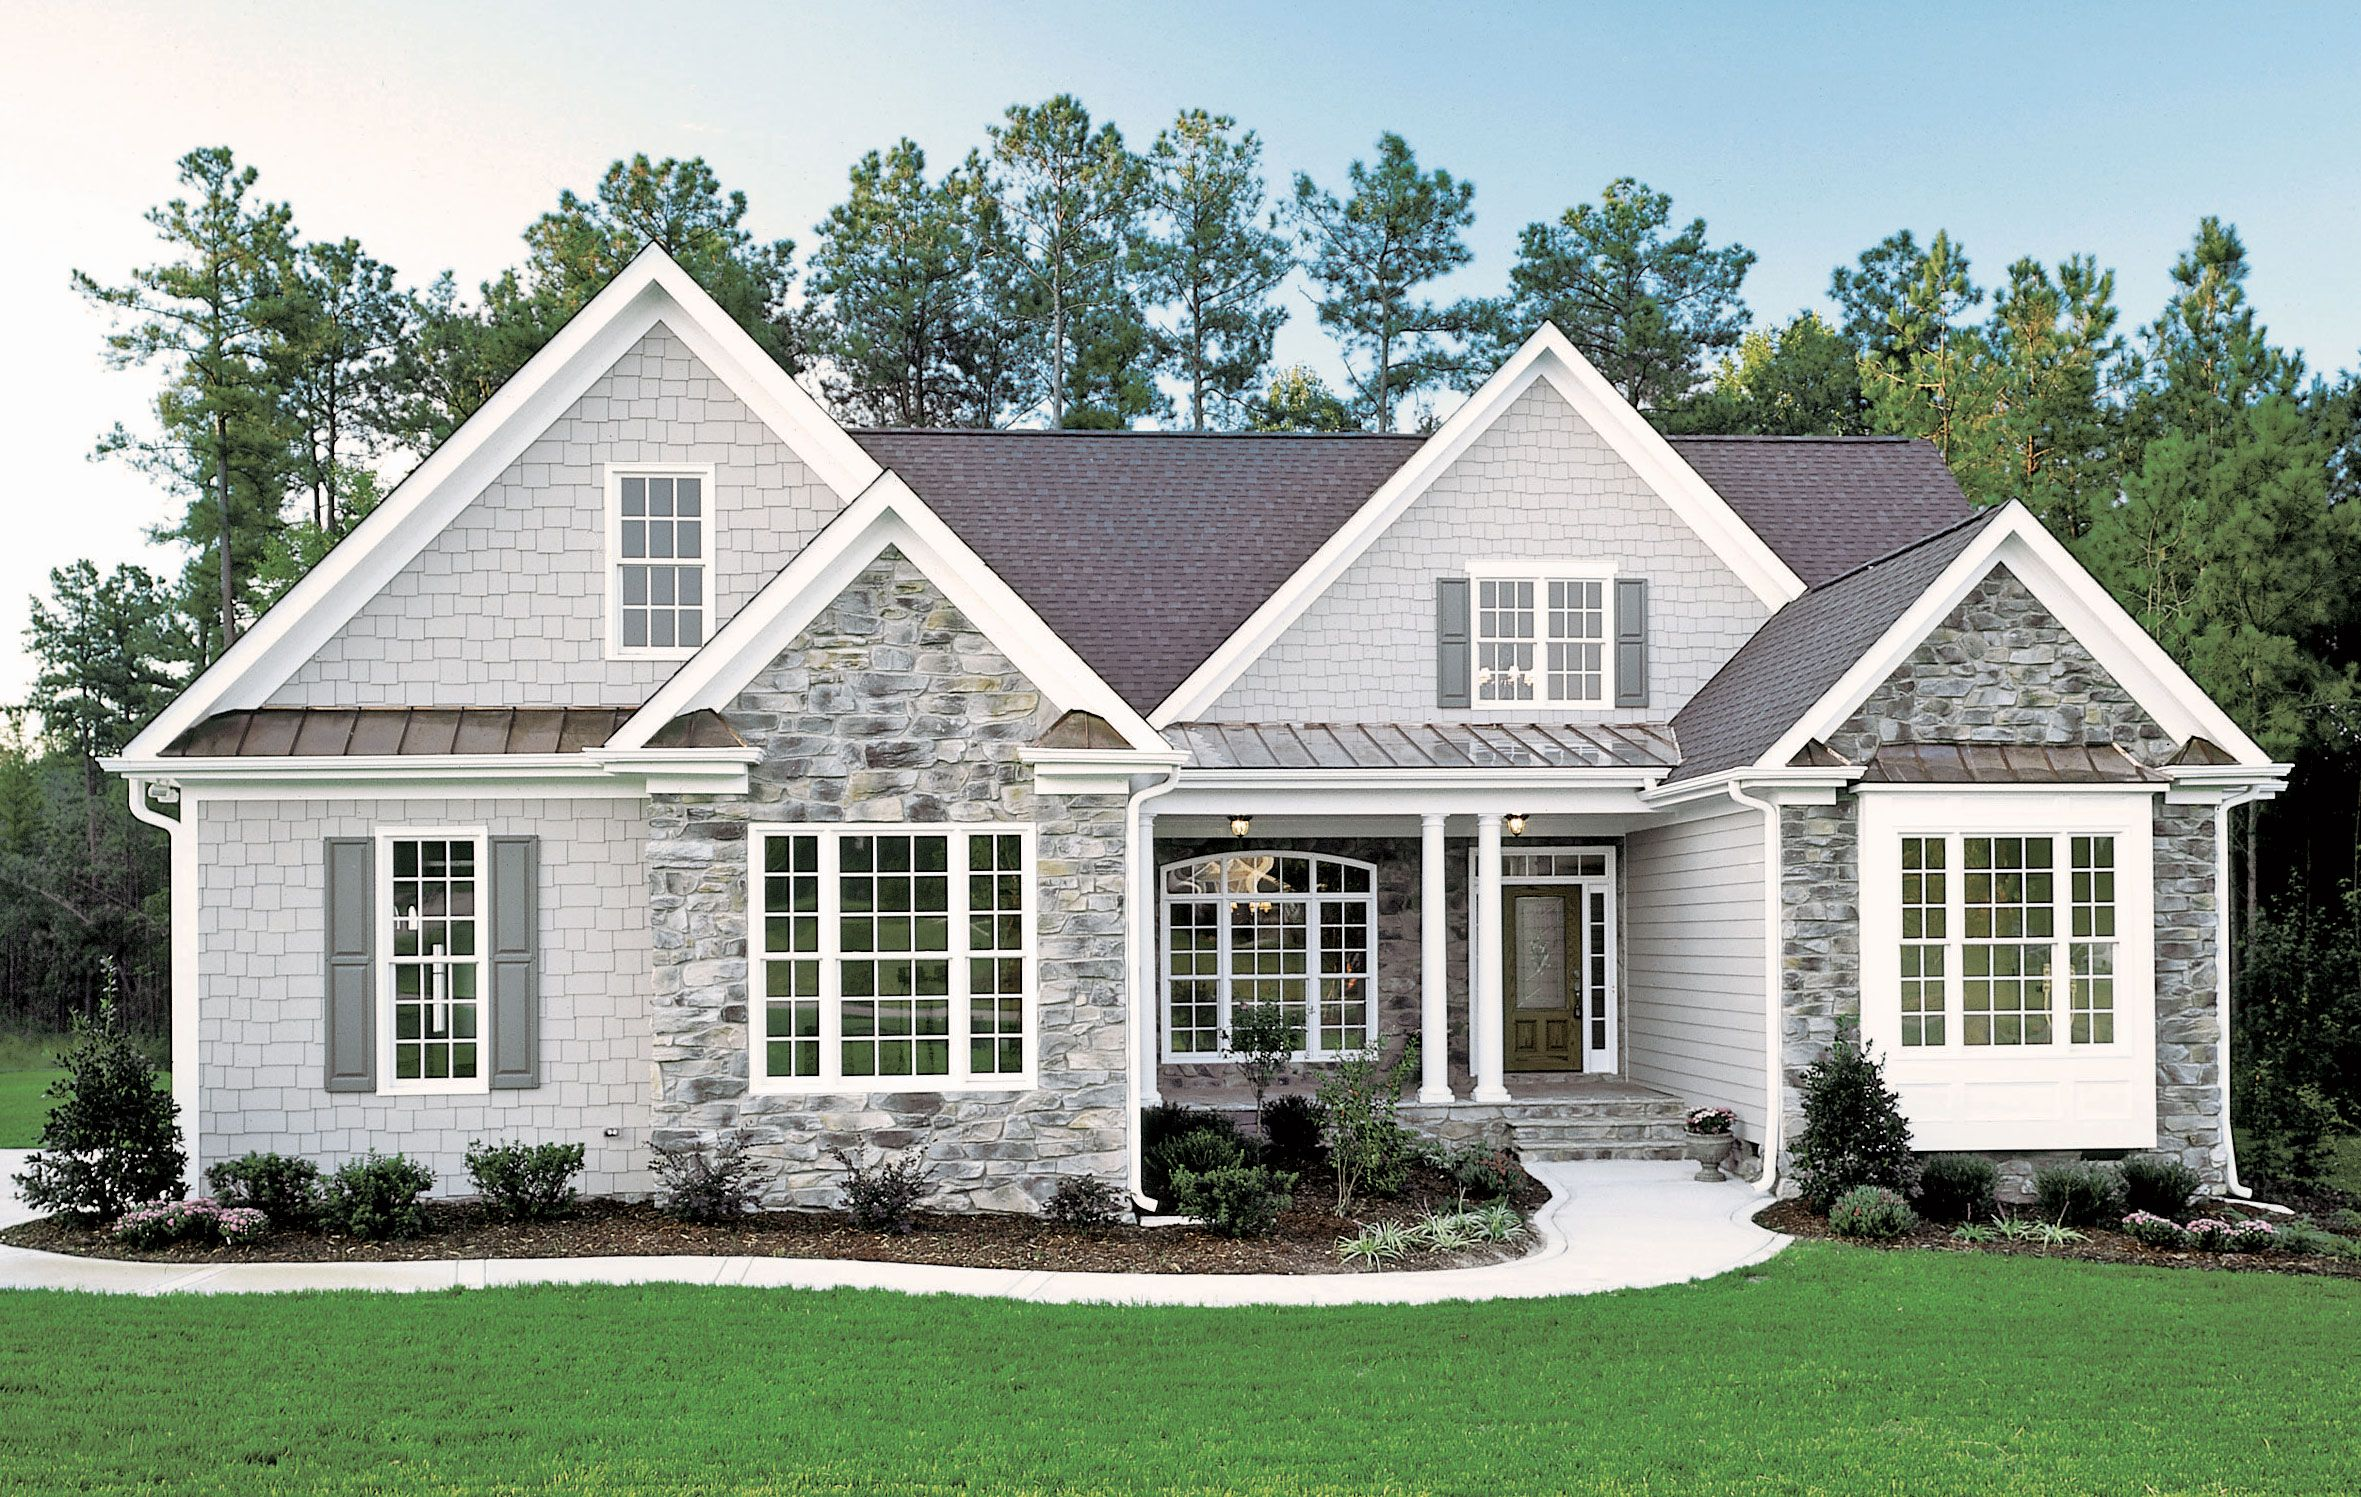 The Whiteheart Plan 926 House Exterior Exterior House Colors Small House Plans